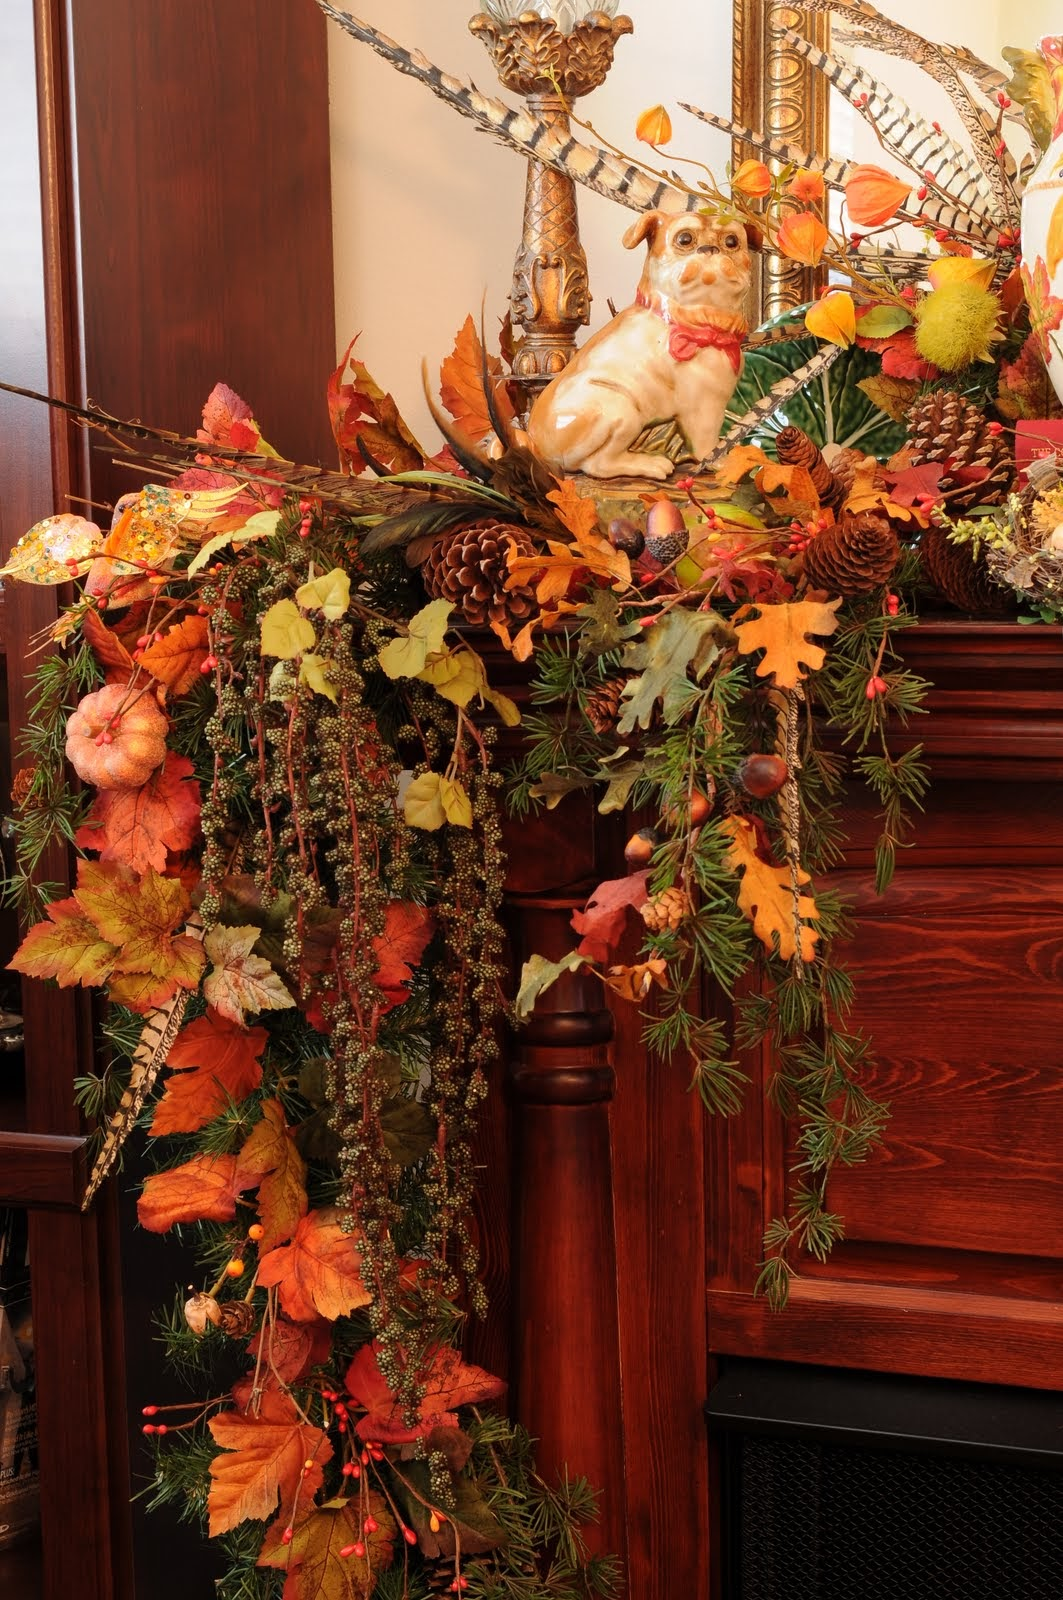 C b i d home decor and design fall decor thanksgiving for Thanksgiving home ideas